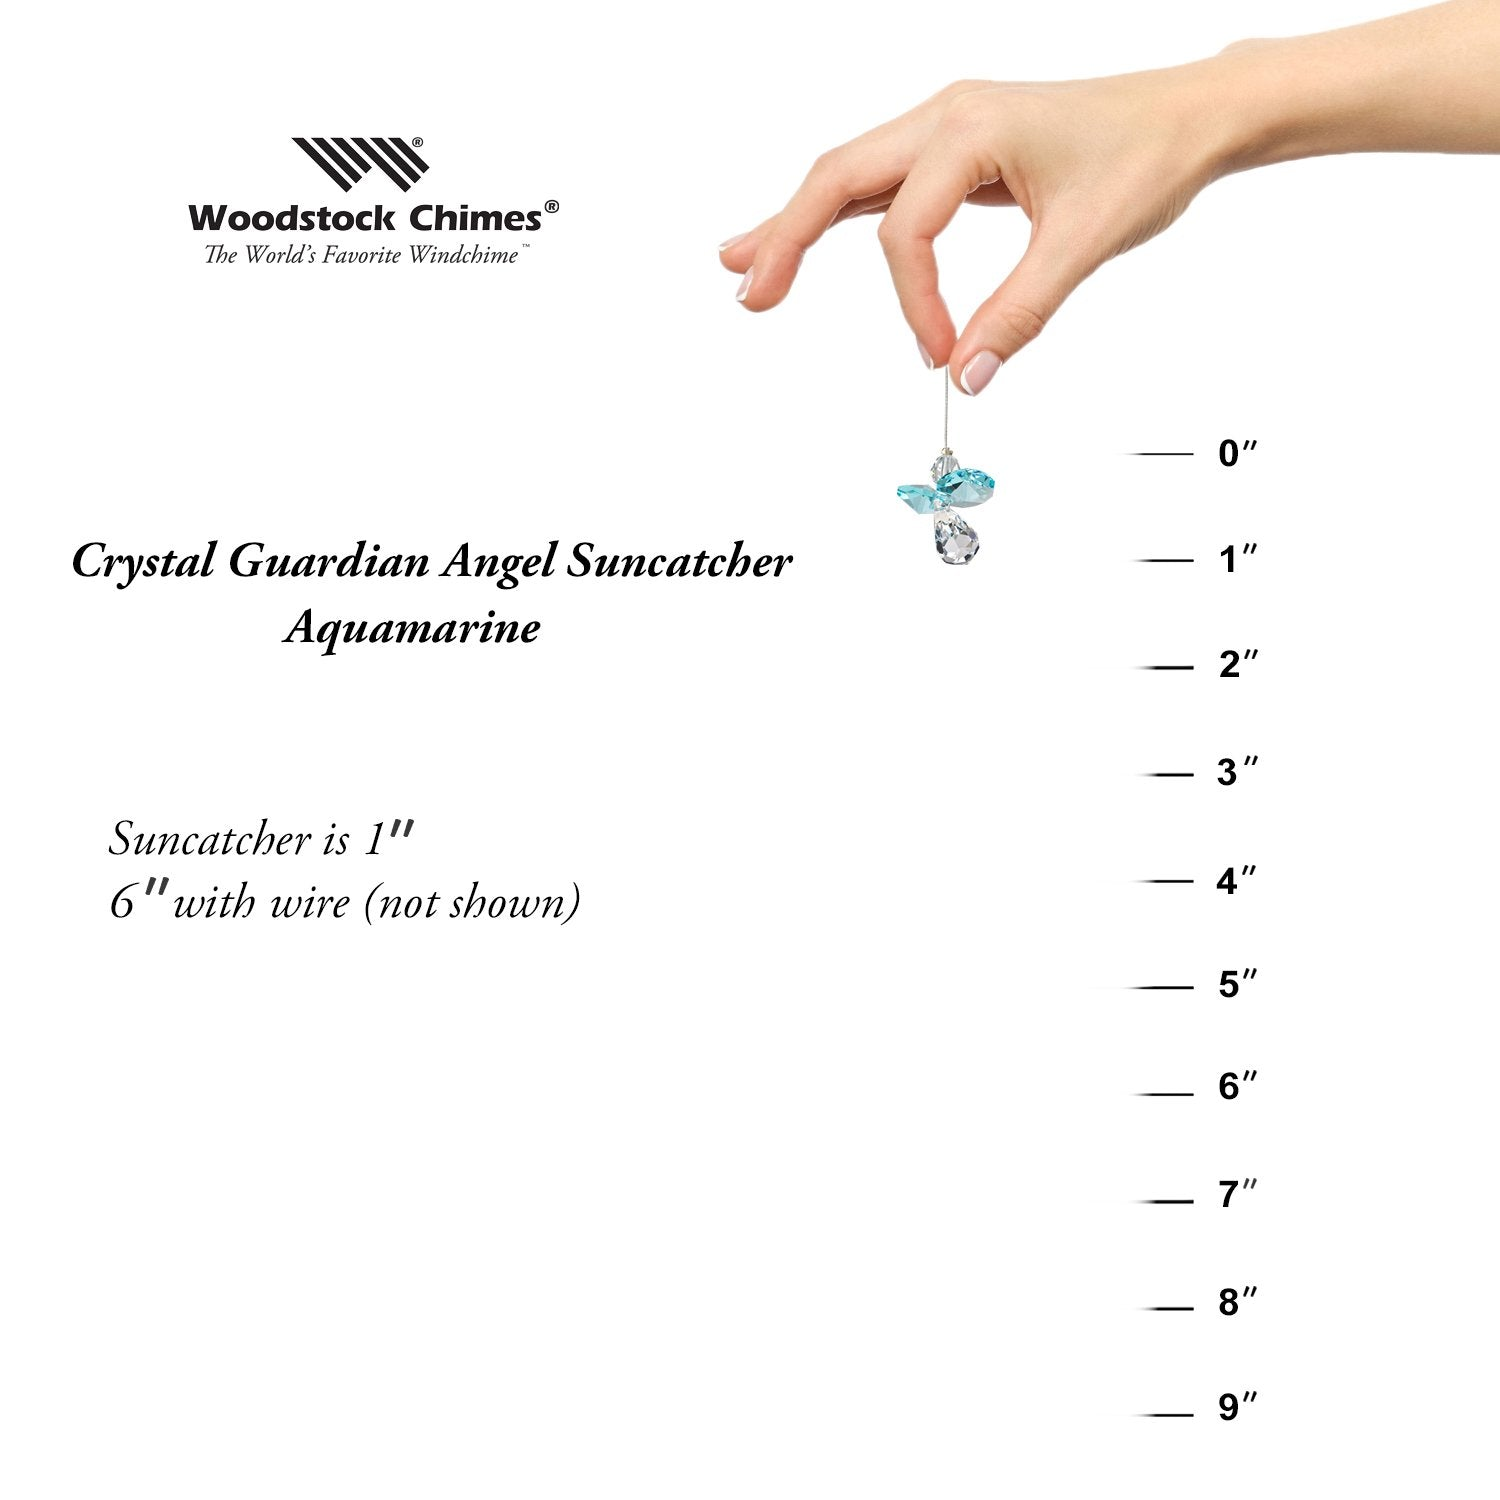 Crystal Guardian Angel Suncatcher - Aquamarine (March) proportion image